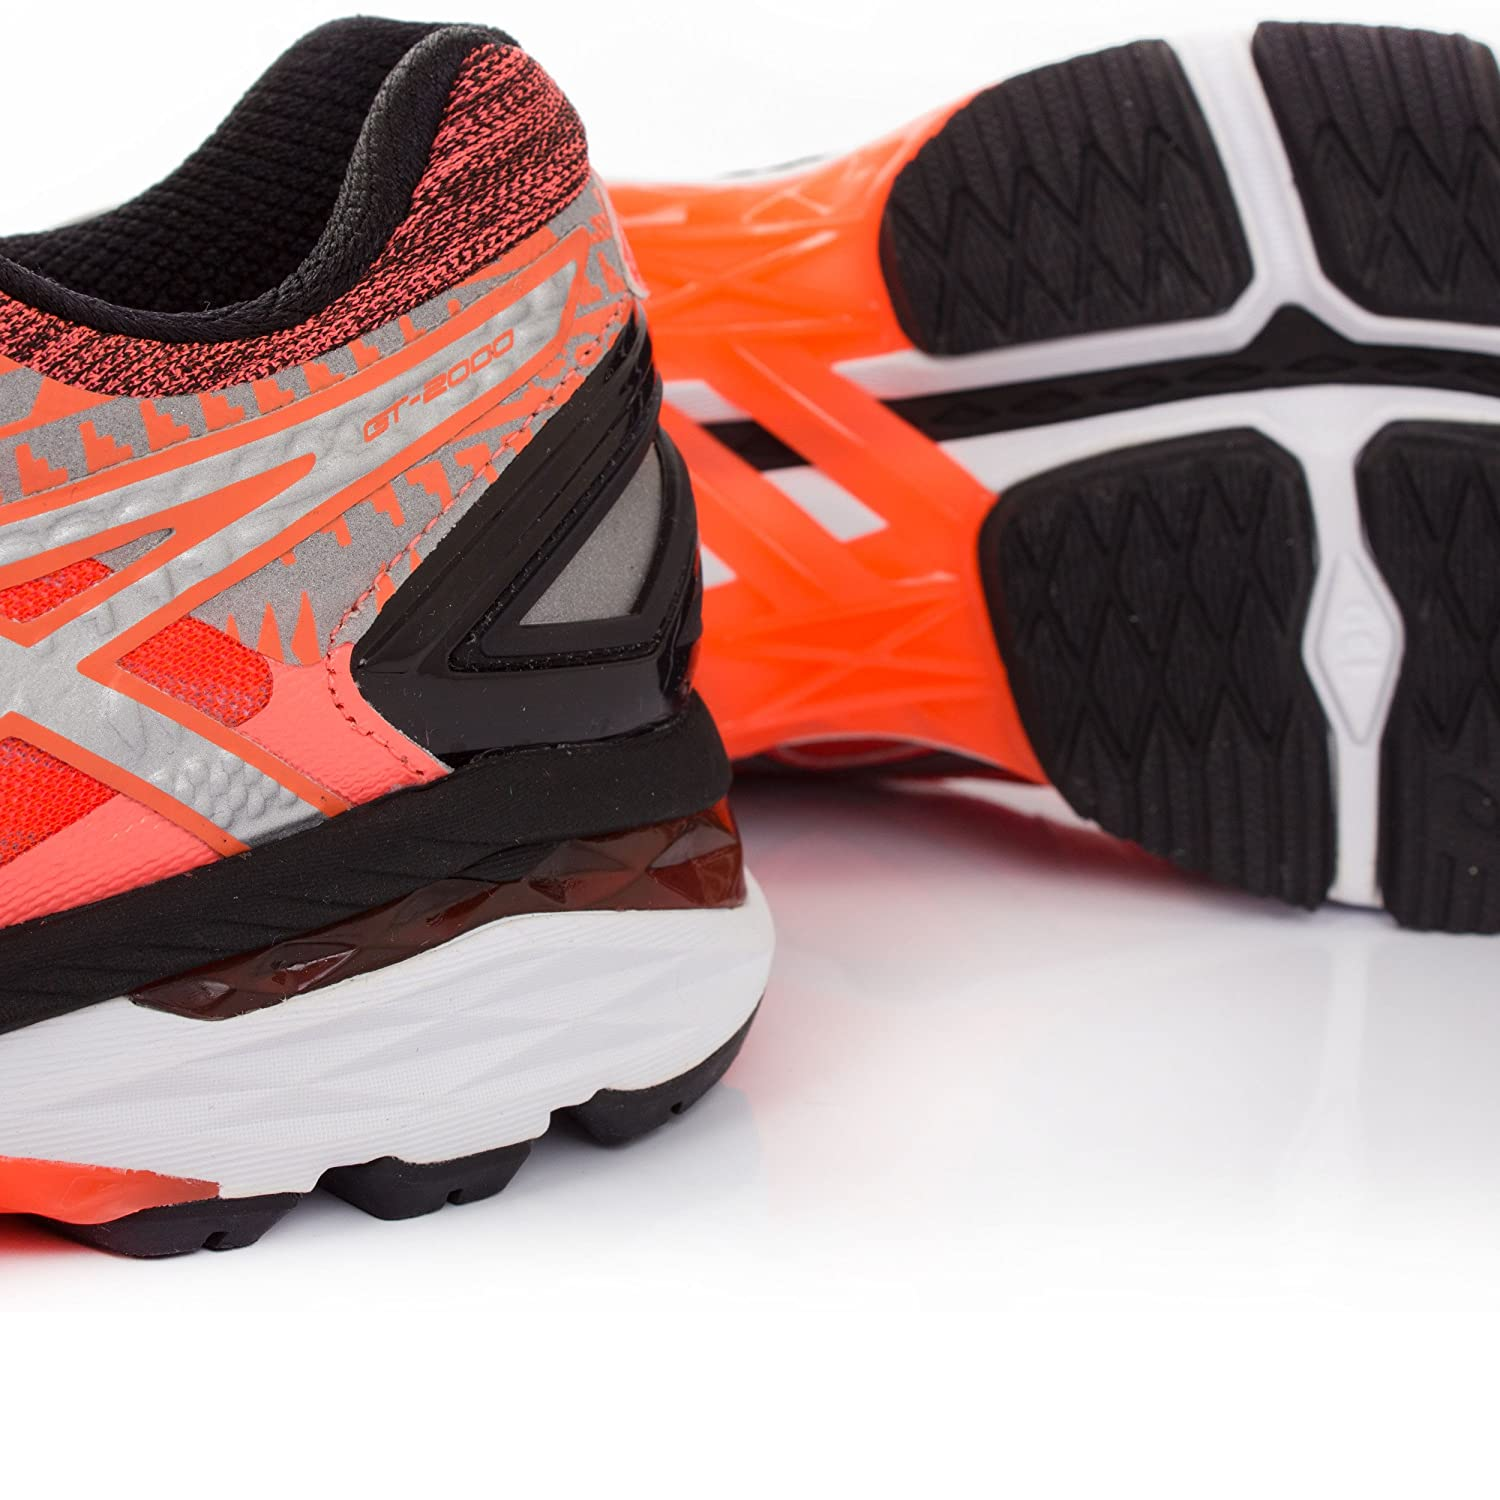 Details about ASICS GT 2000 4 LITE SHOW PLASMAGUARD WOMENS RUNNING TRAINERS T6F9N 0693 NEW